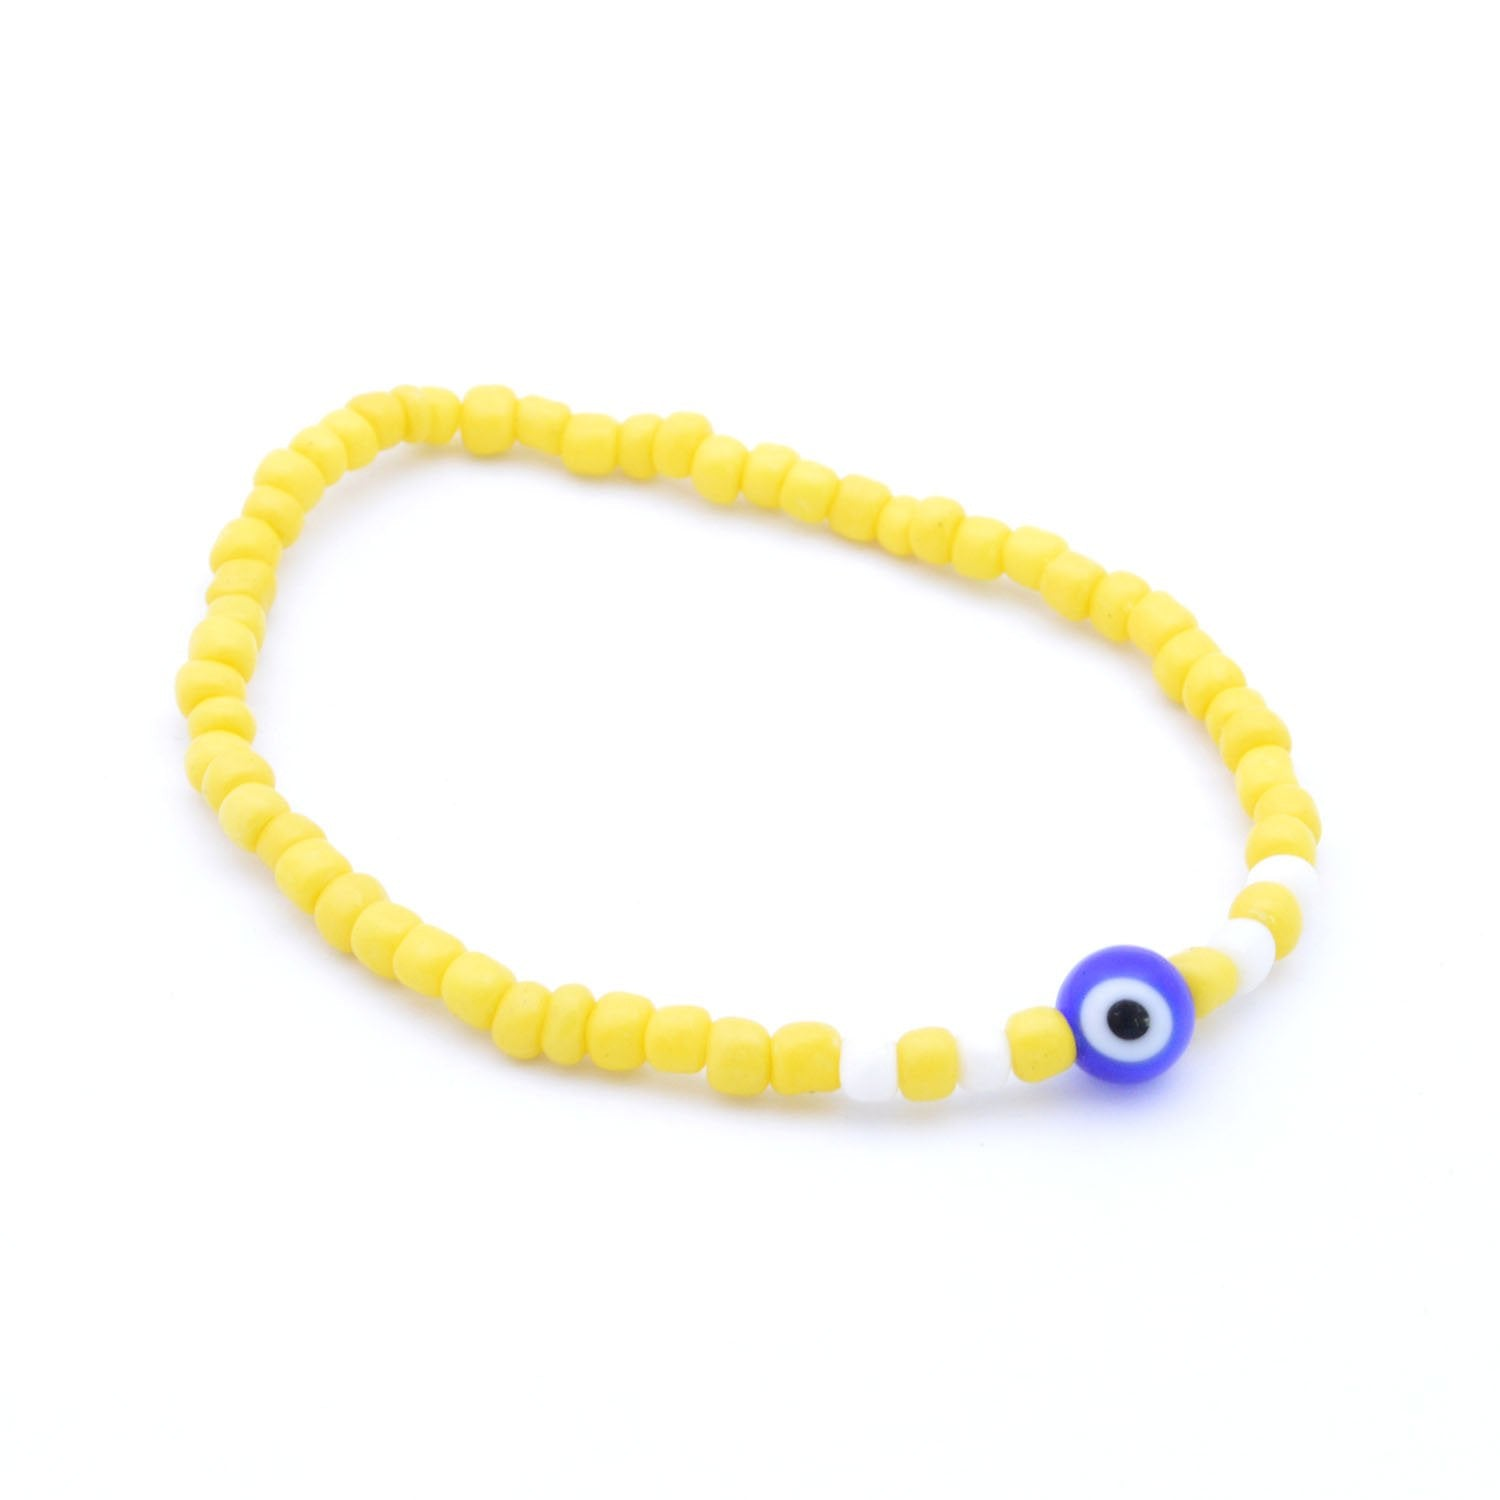 Blue Evil Eye Accessories Yellow Beads Bracelet